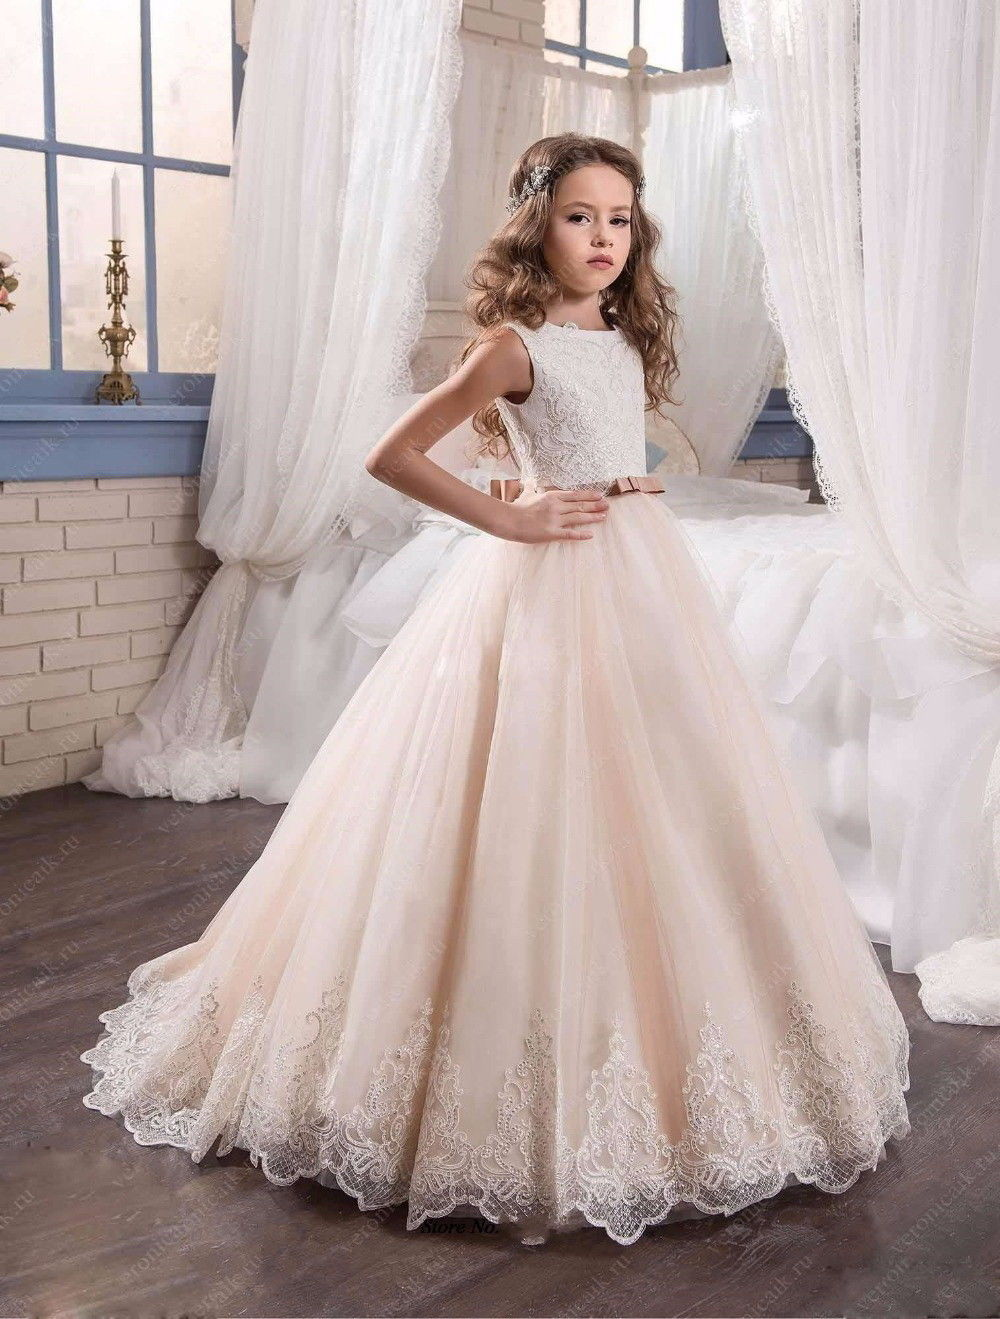 Flower Girl Dresses For Wedding Pageant 9 Colors Tulle Lace Applique Kids First Communion Gown Party Princess Girls Dresses